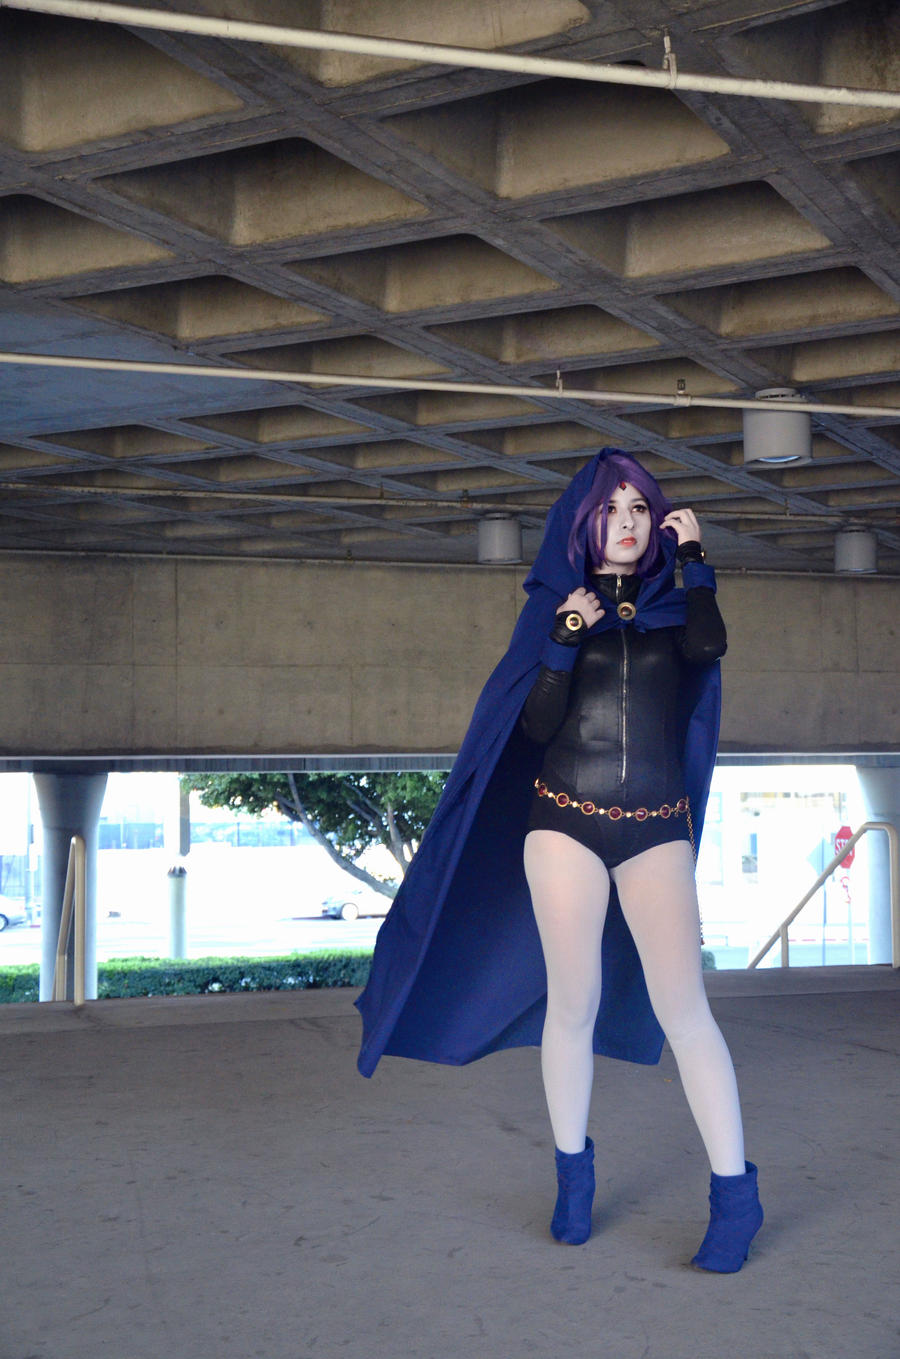 RavenCosplay-2 by Ceshira